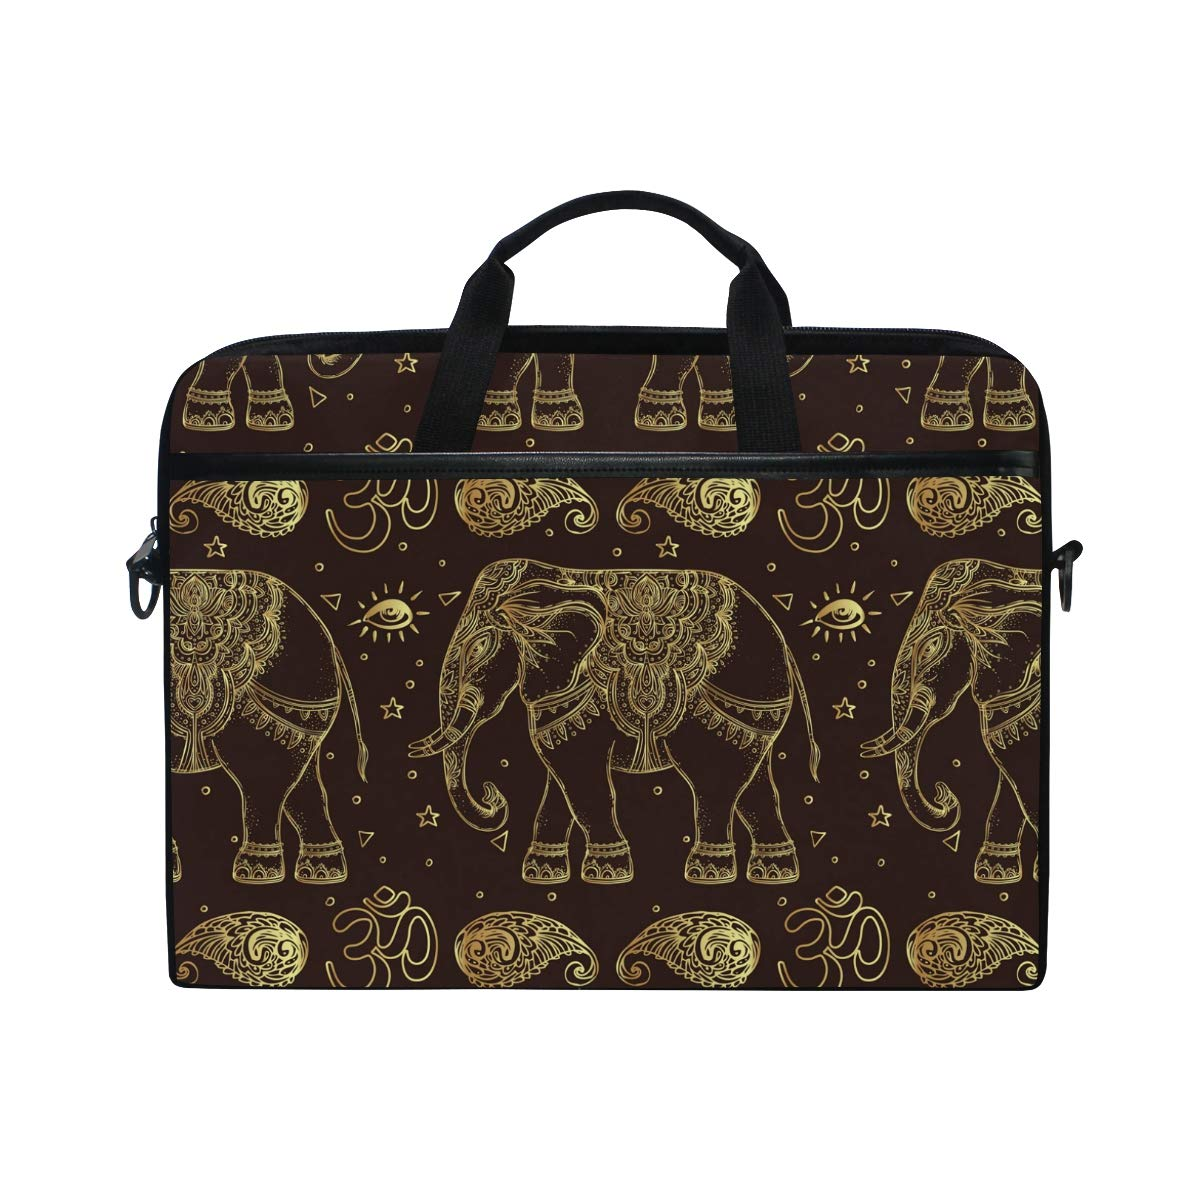 IMOBABY Ethnic Mandala Elephant Tribal Laptop Bag Canvas Messenger Shoulder Bag Briefcase Fits 15-15.4 inch g7442656p195c229s328